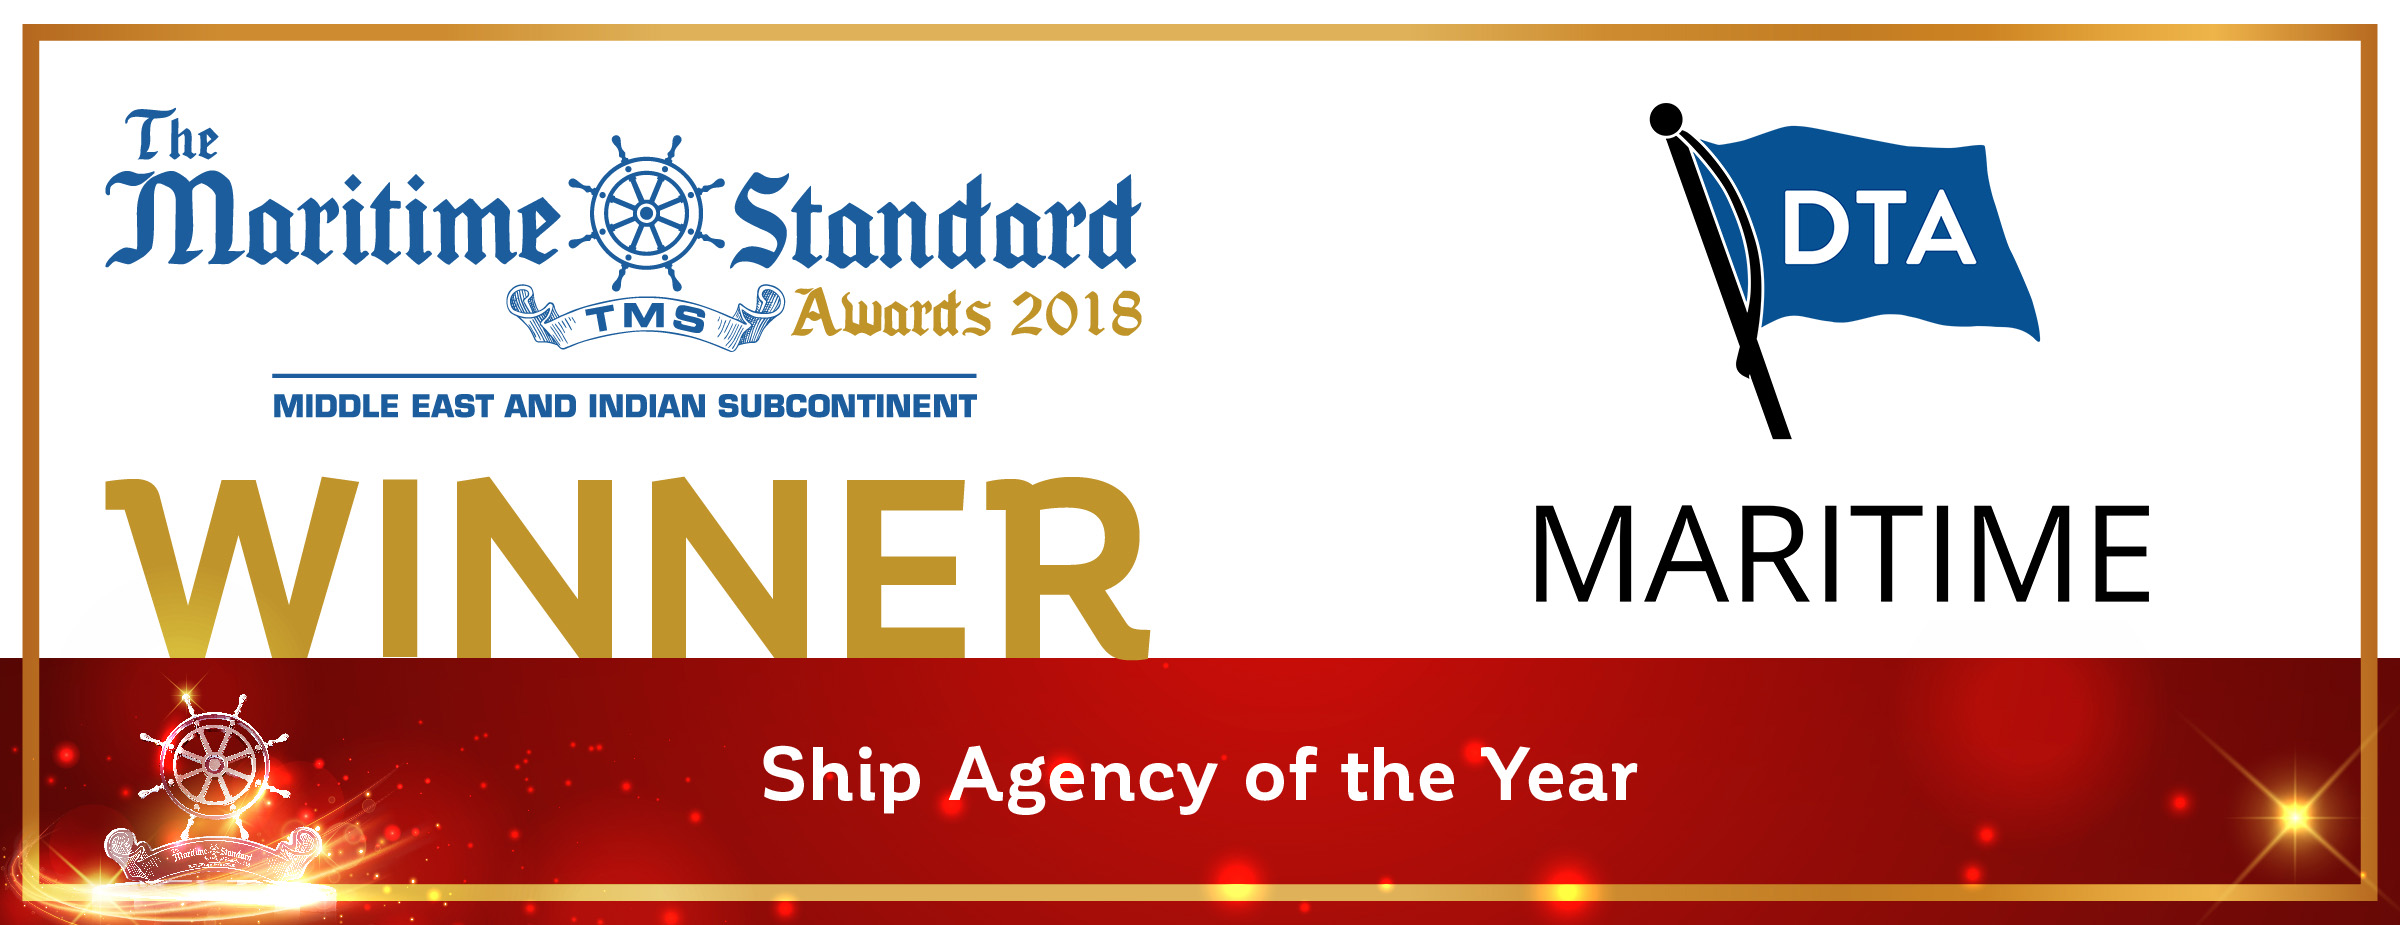 DTA Maritime Wins 'Ship Agency of the Year' At The 2018